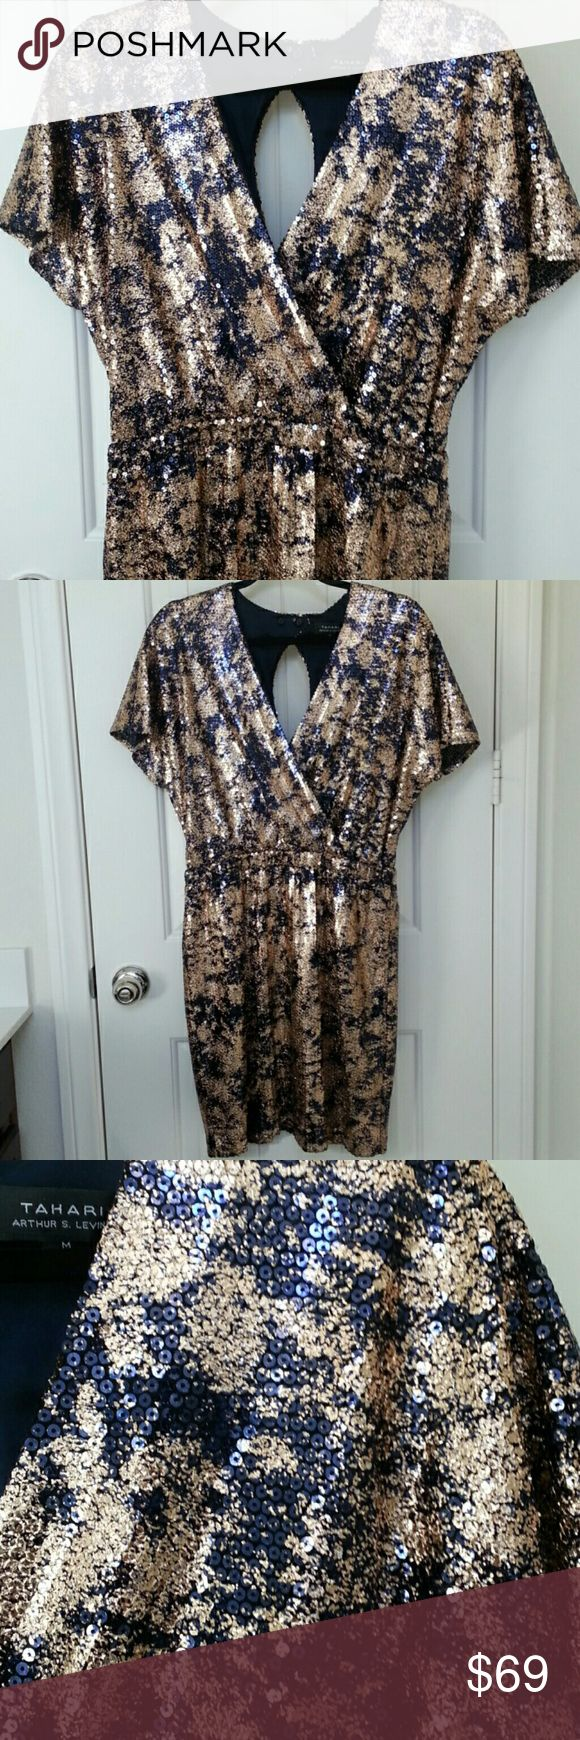 """Tahari Metallic Sequin Dress A stunning metallic sequin dress by Tahari.  Elastic waistband and two button closure at back. Fully lined. Brand new with tags. MEASUREMENTS: waist 30"""" length 37""""   97% Polyester 3% Elastane Tahari Dresses"""